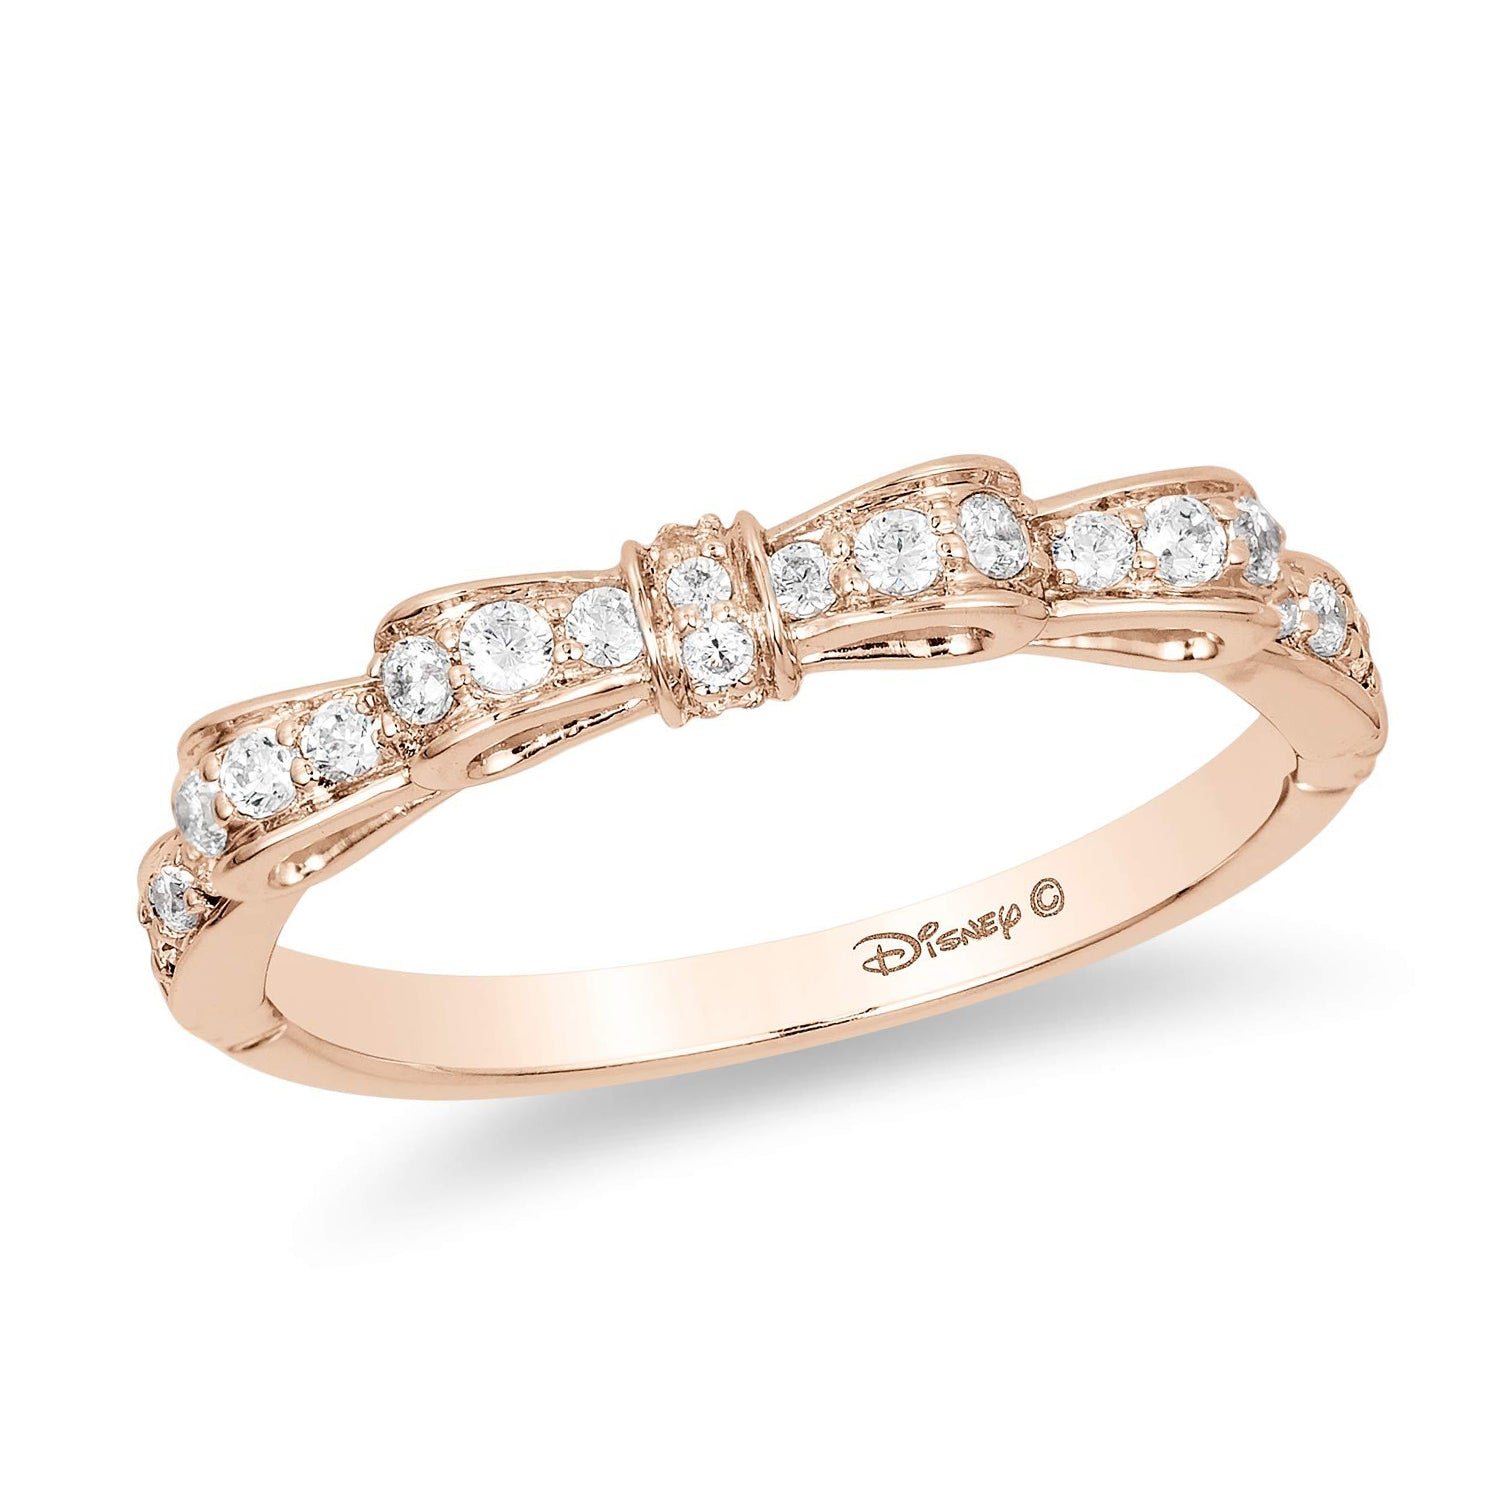 enchanted_disney-snow-white_bow_ring-14k_rose_gold_1/4CTTW_1